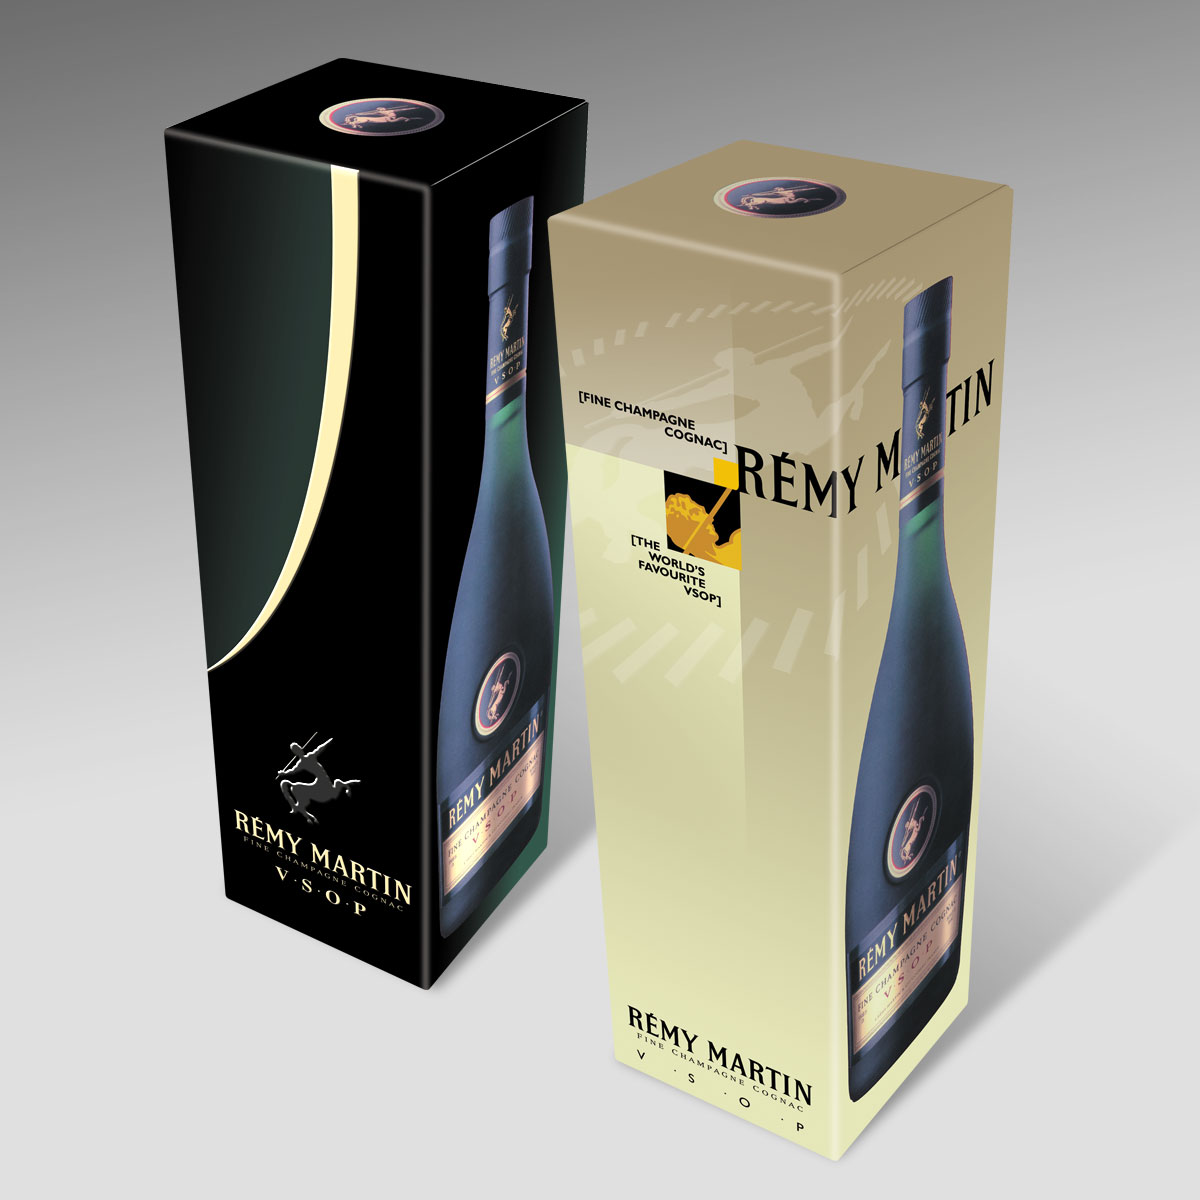 Remy Martin Package Design by Landis Productions